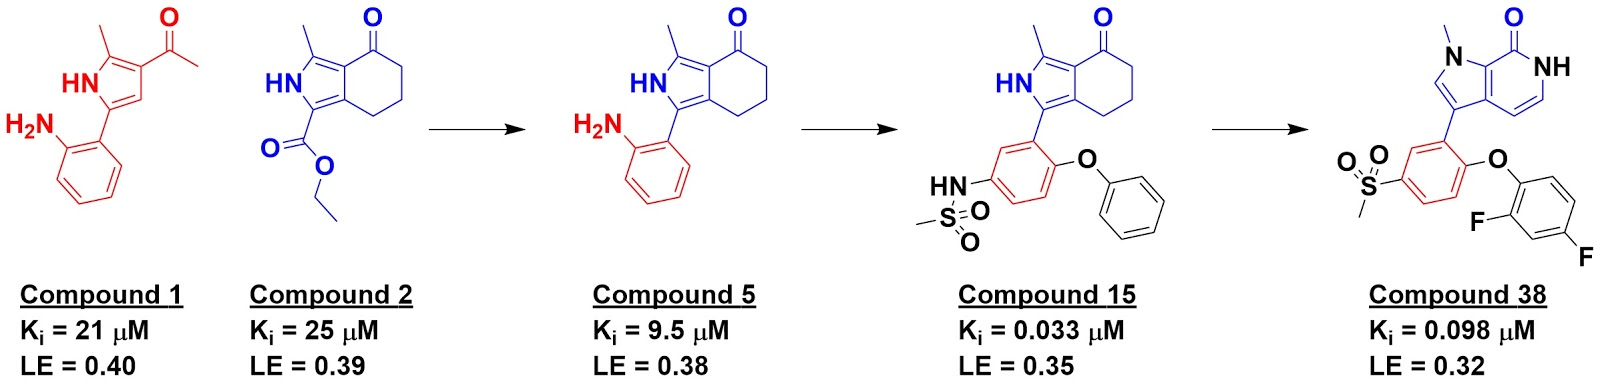 Crystallography of each fragment bound to BRD4 revealed that they bind in the acetyl lysine recognition site and make contacts with the conserved asparagine ...